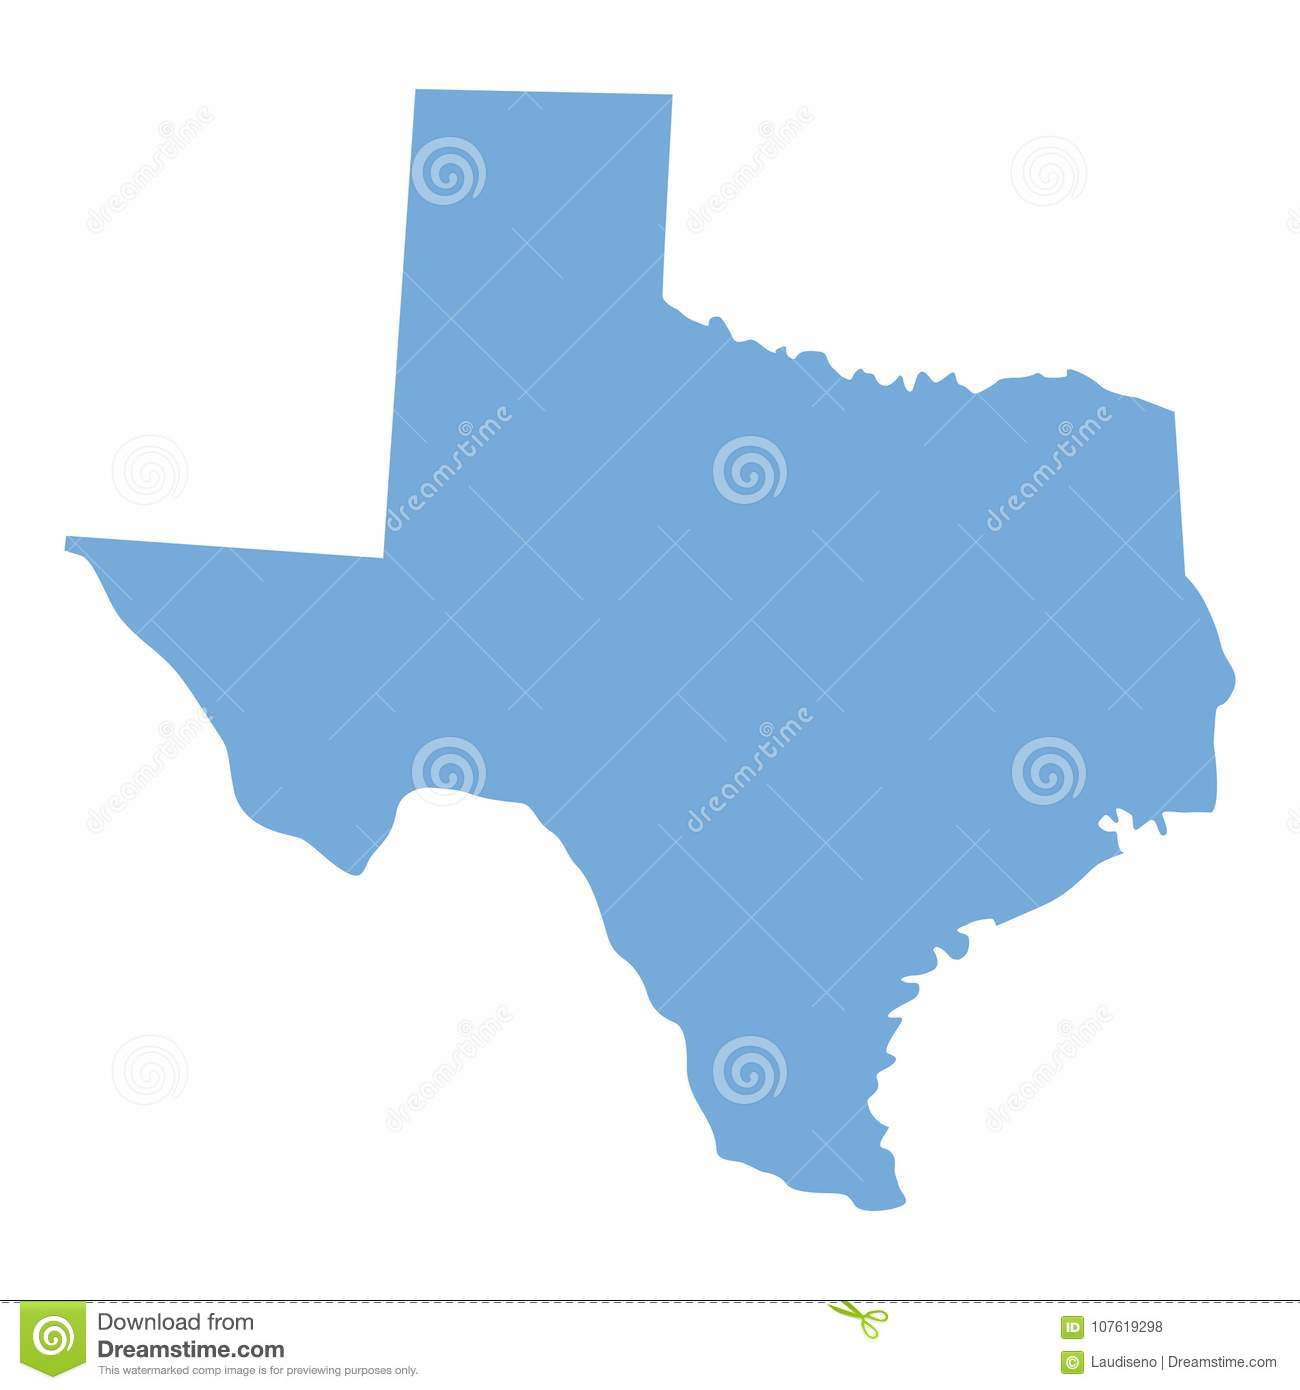 Texas State map stock vector. Illustration of national ...